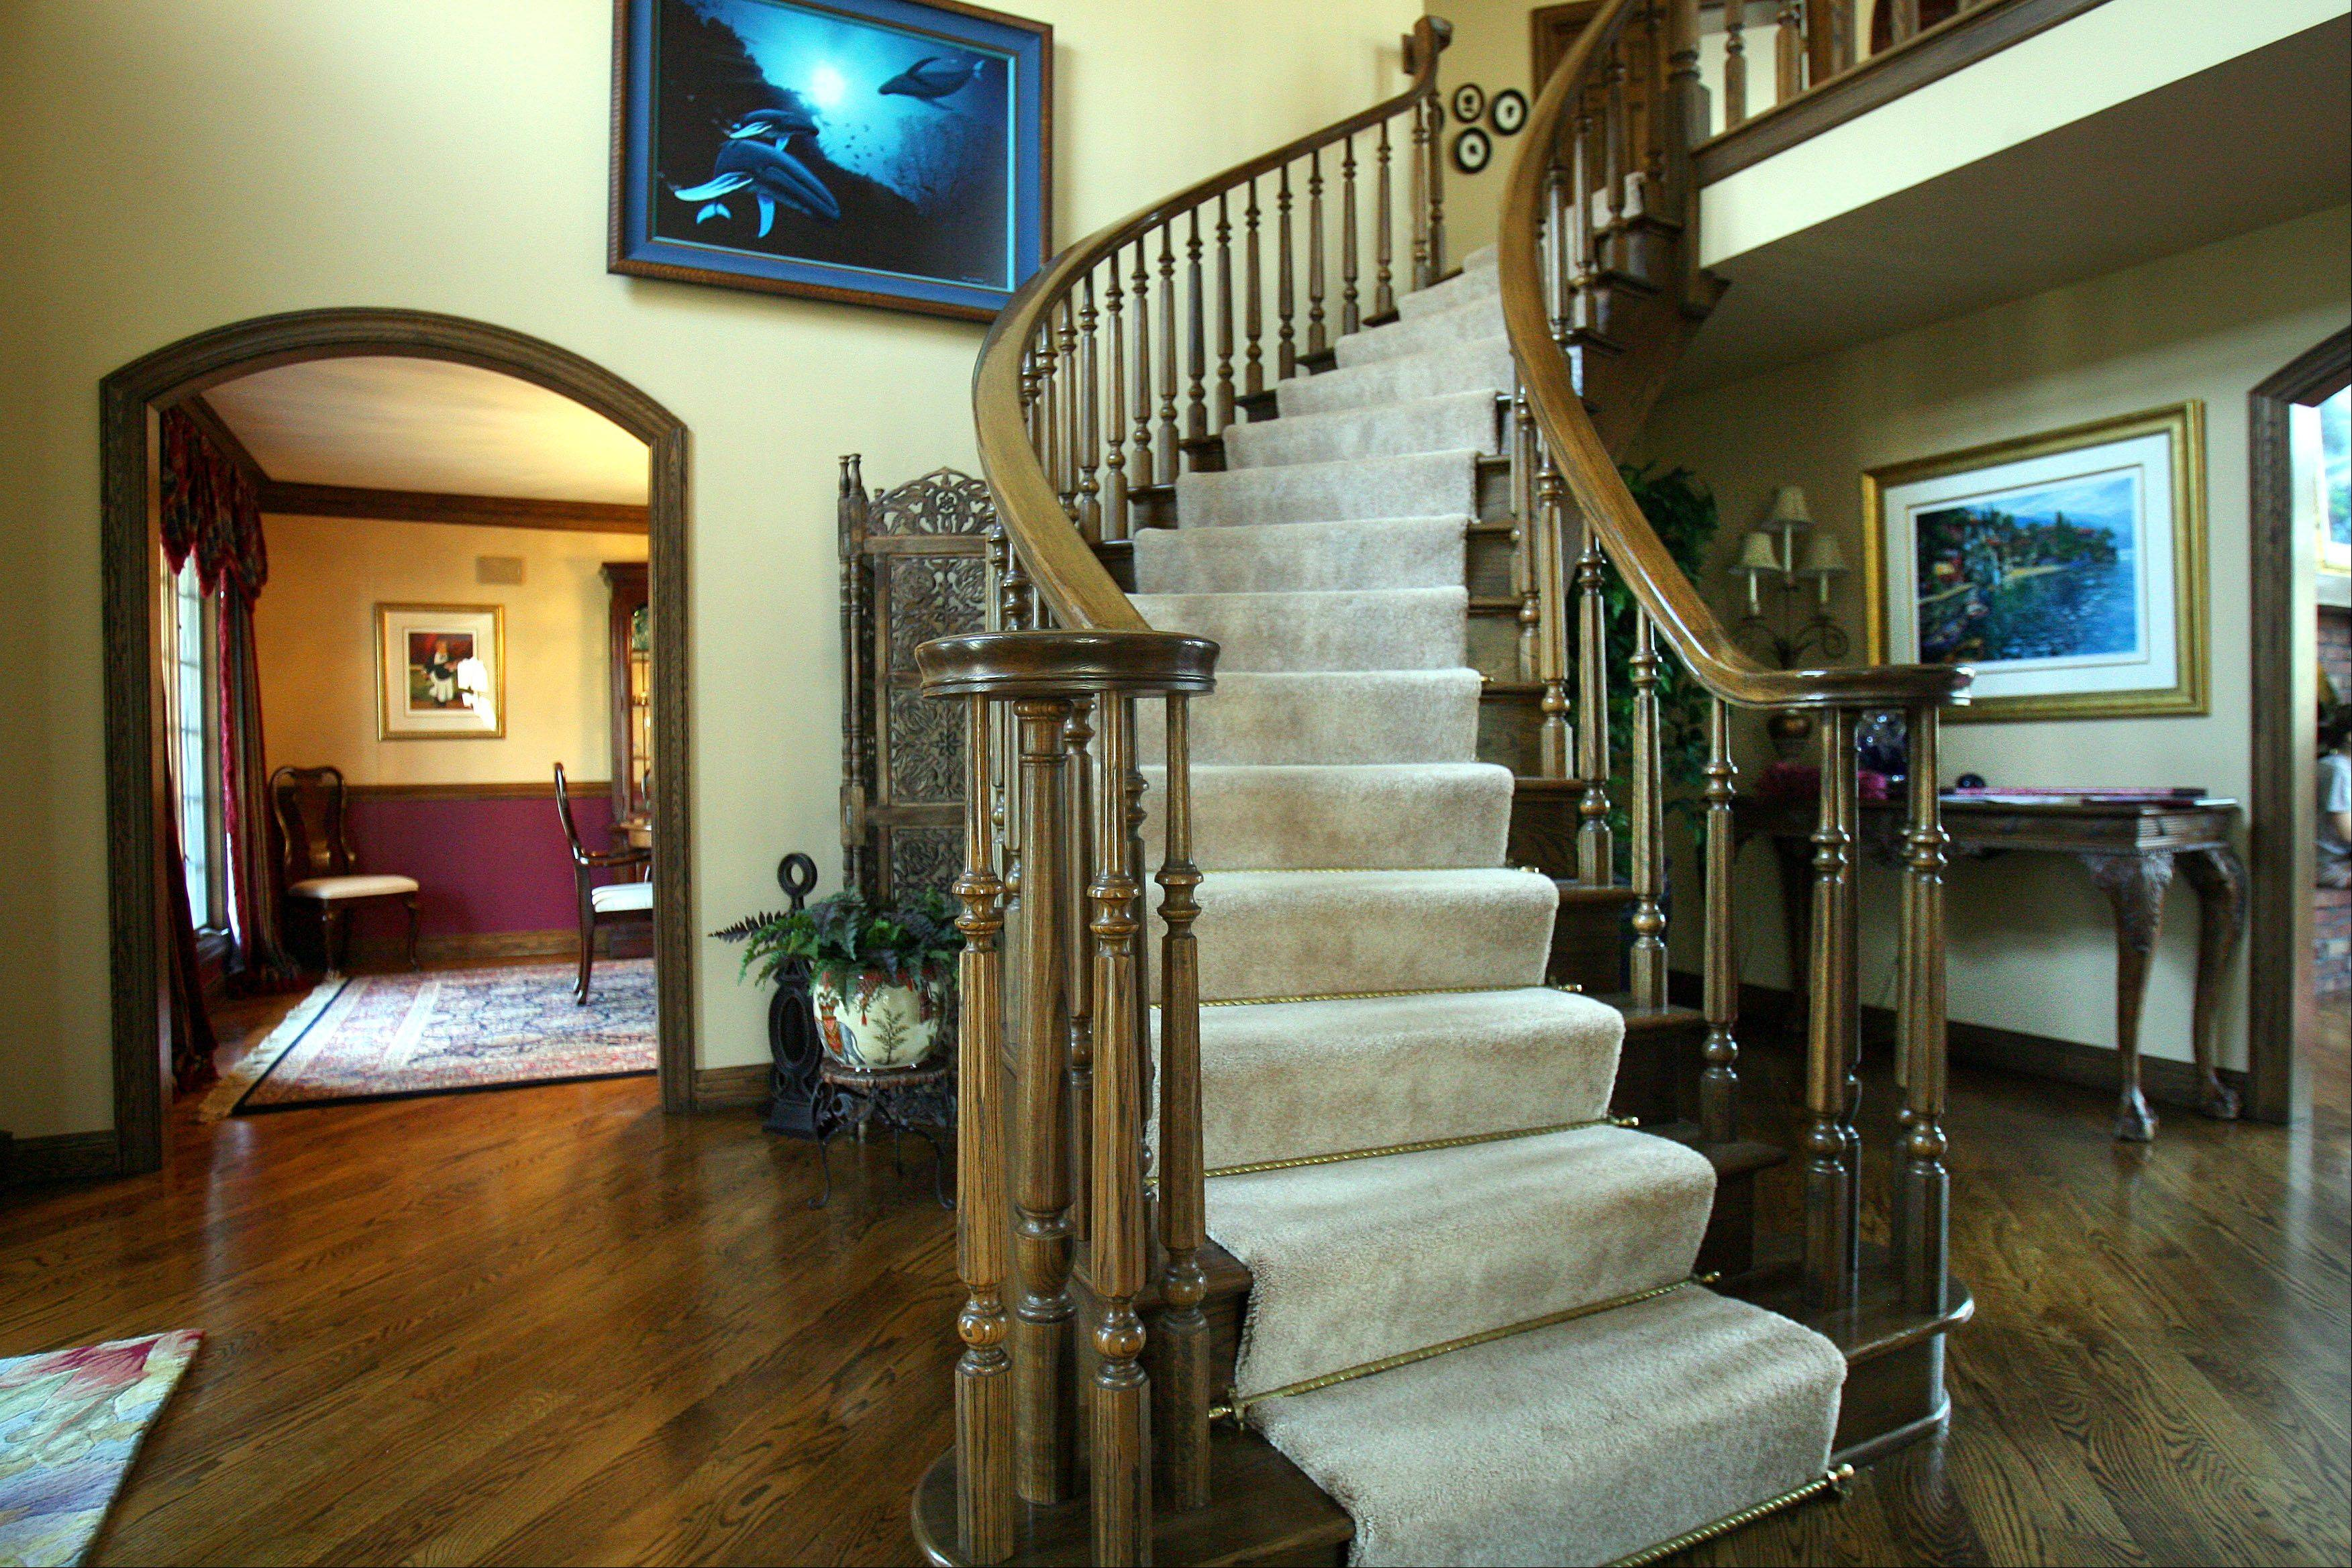 The custom circular staircase is one of the details in Louise and Tony Sorrentino's home in Countryside Lake.